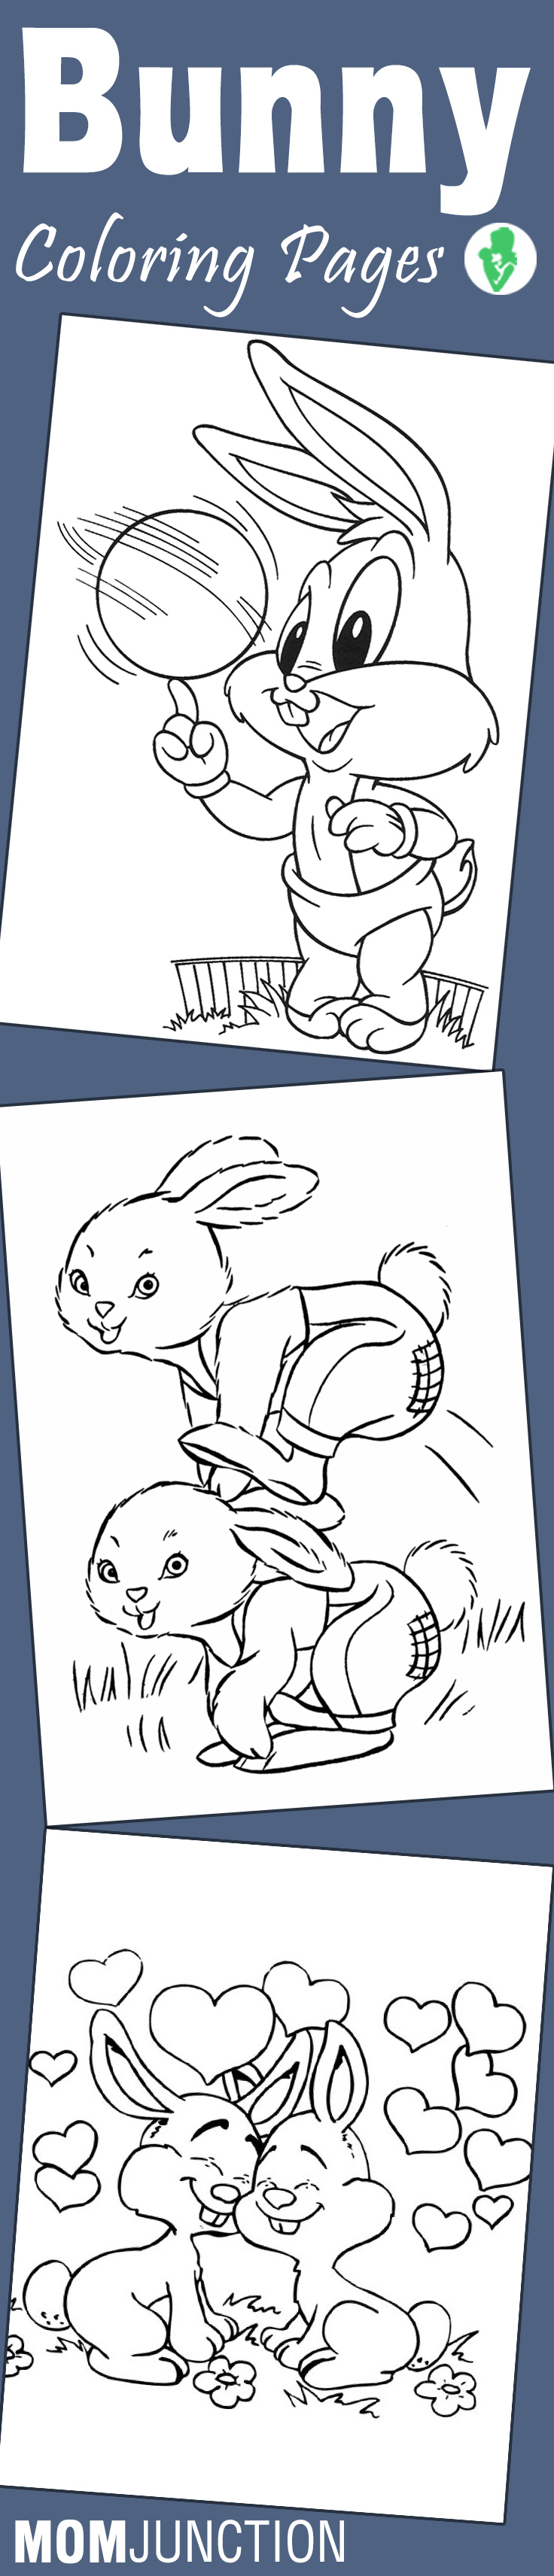 Coloring by numbers for rabbits - Coloring By Numbers For Rabbits 59